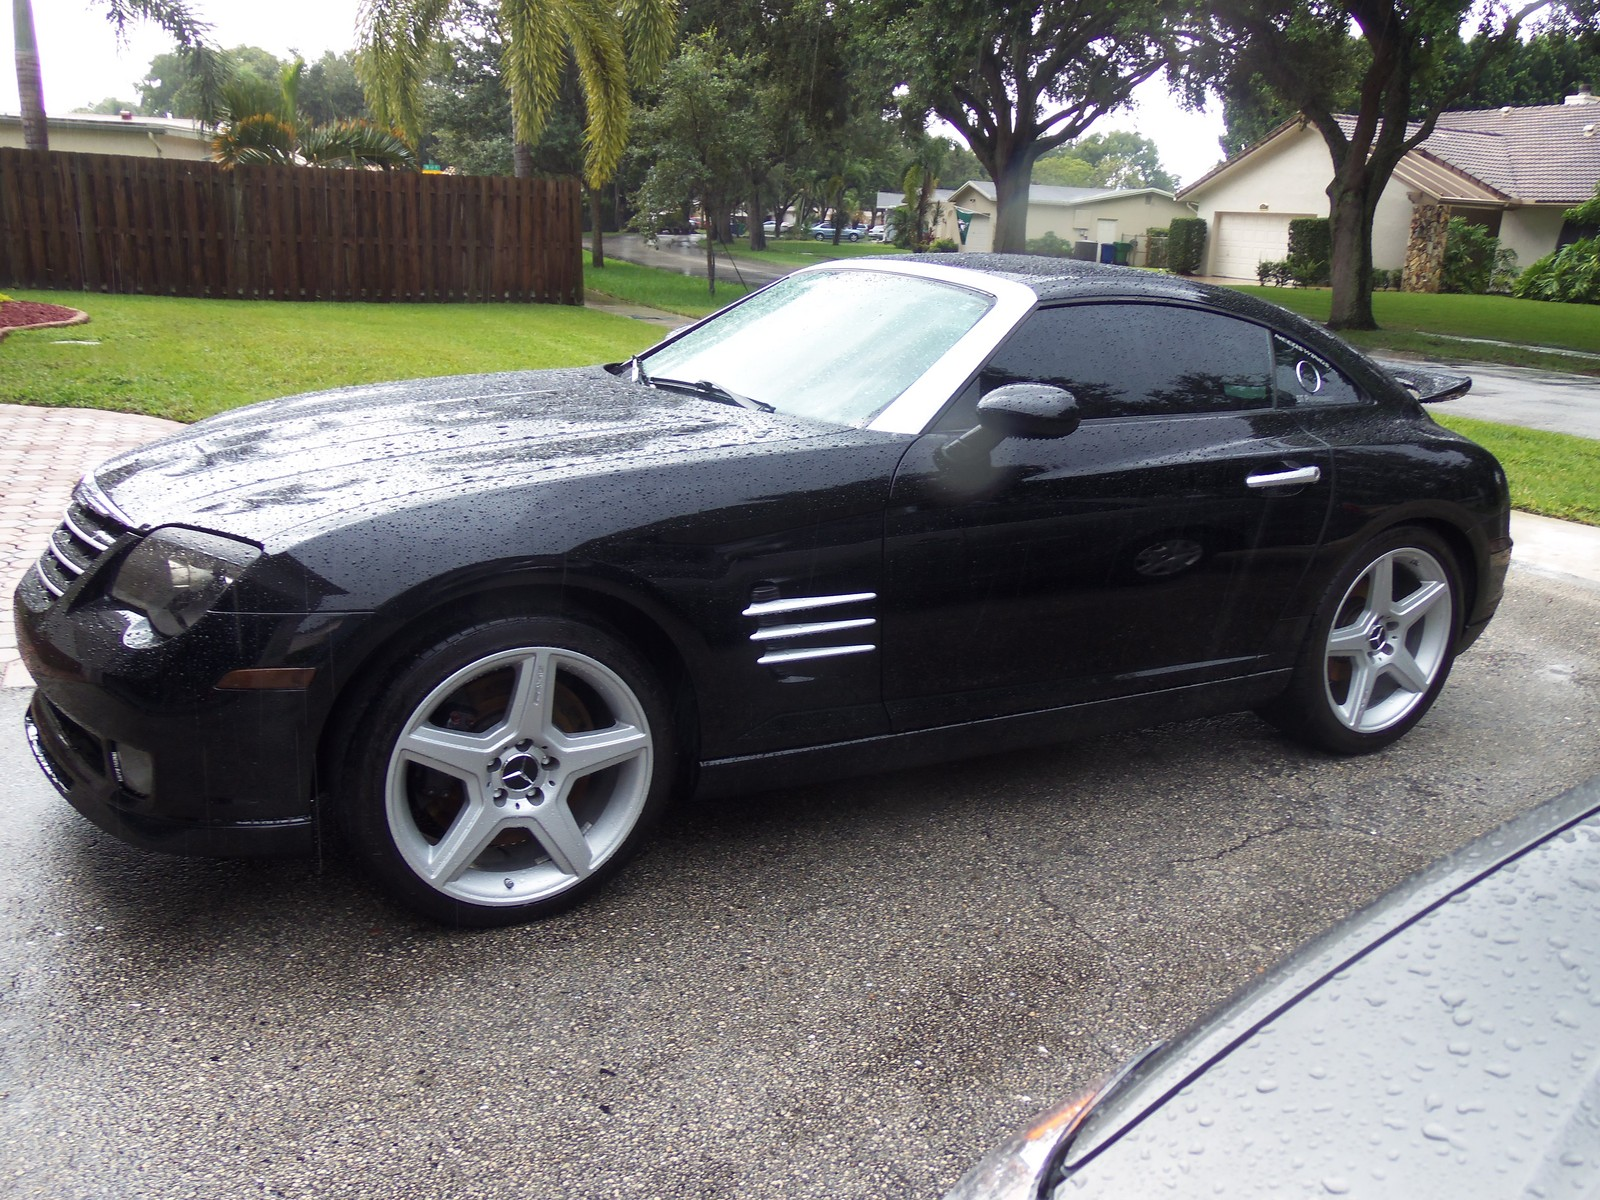 2005 Chrysler Crossfire Information And Photos Zombiedrive 300 Owners Manual 17